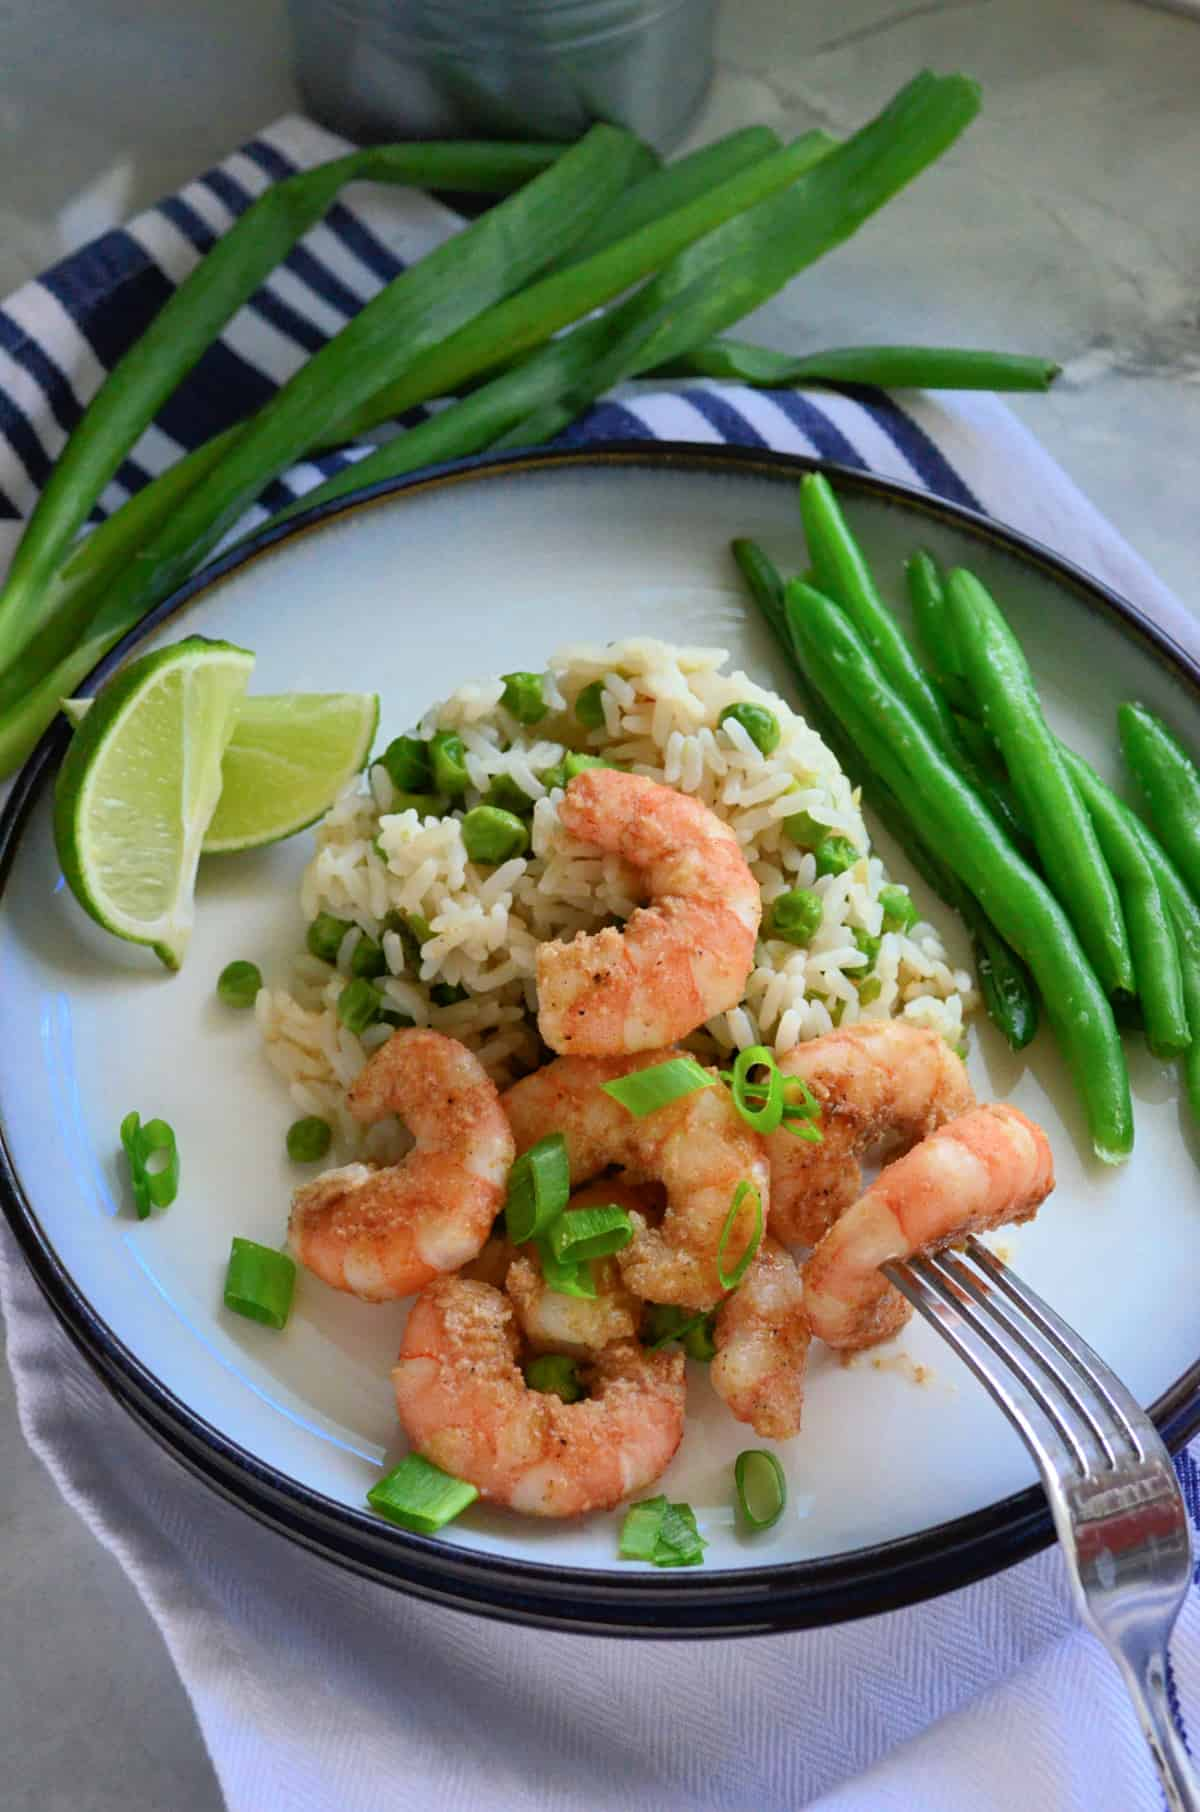 White plate filled with white rice, peas, and shrimp with a fork poking a piece of shrimp.